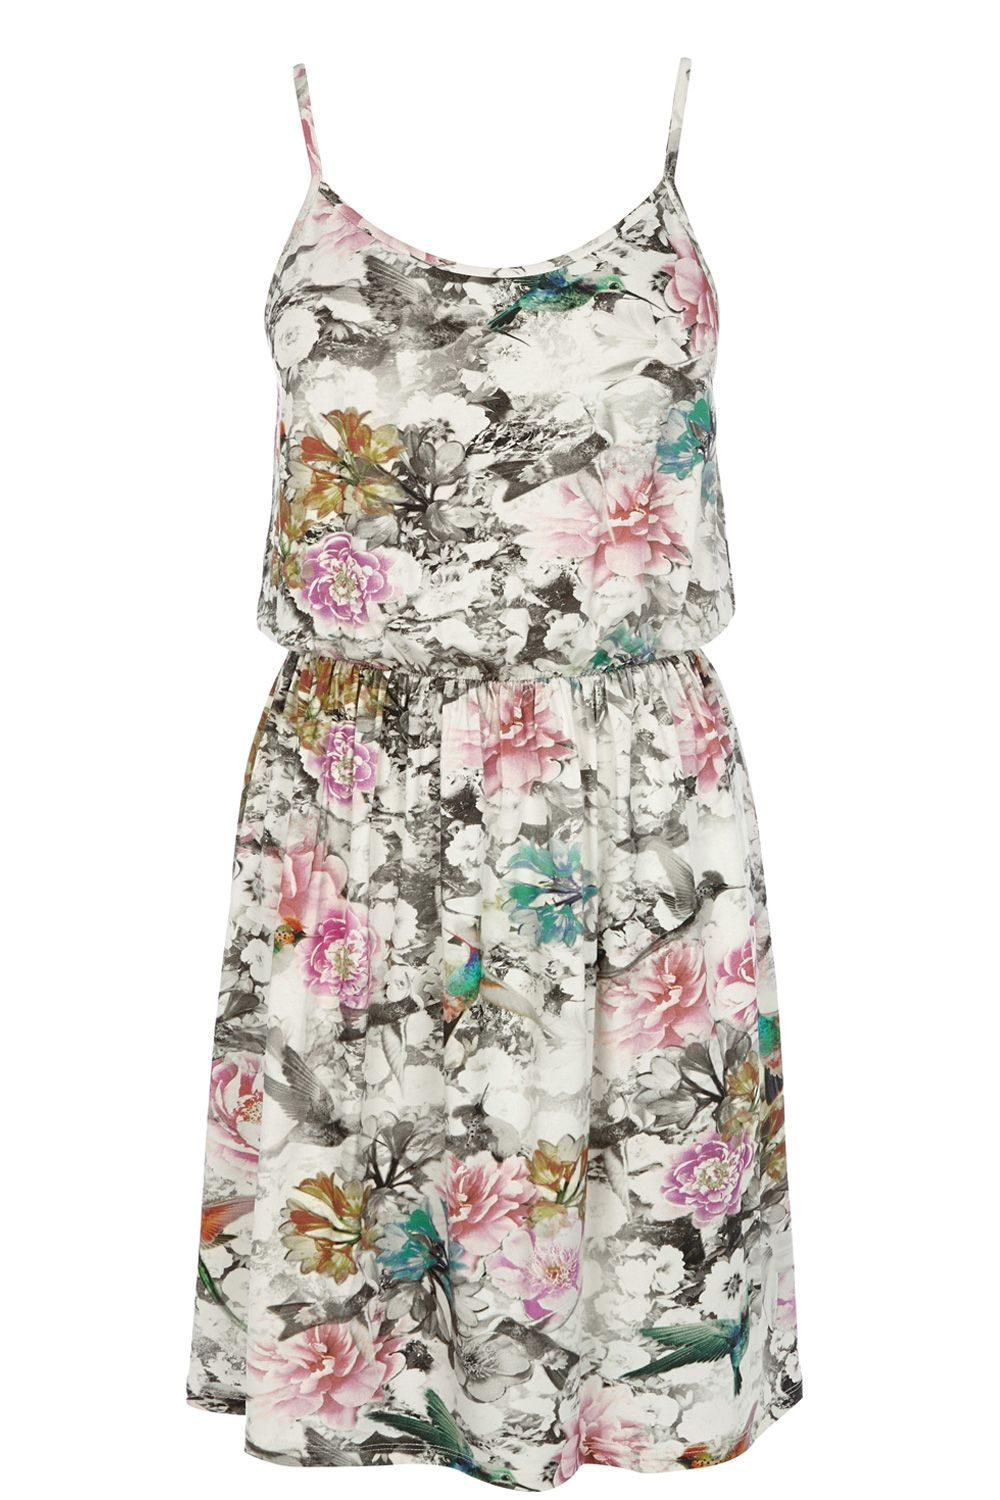 Hummingbird Print Sun Dress